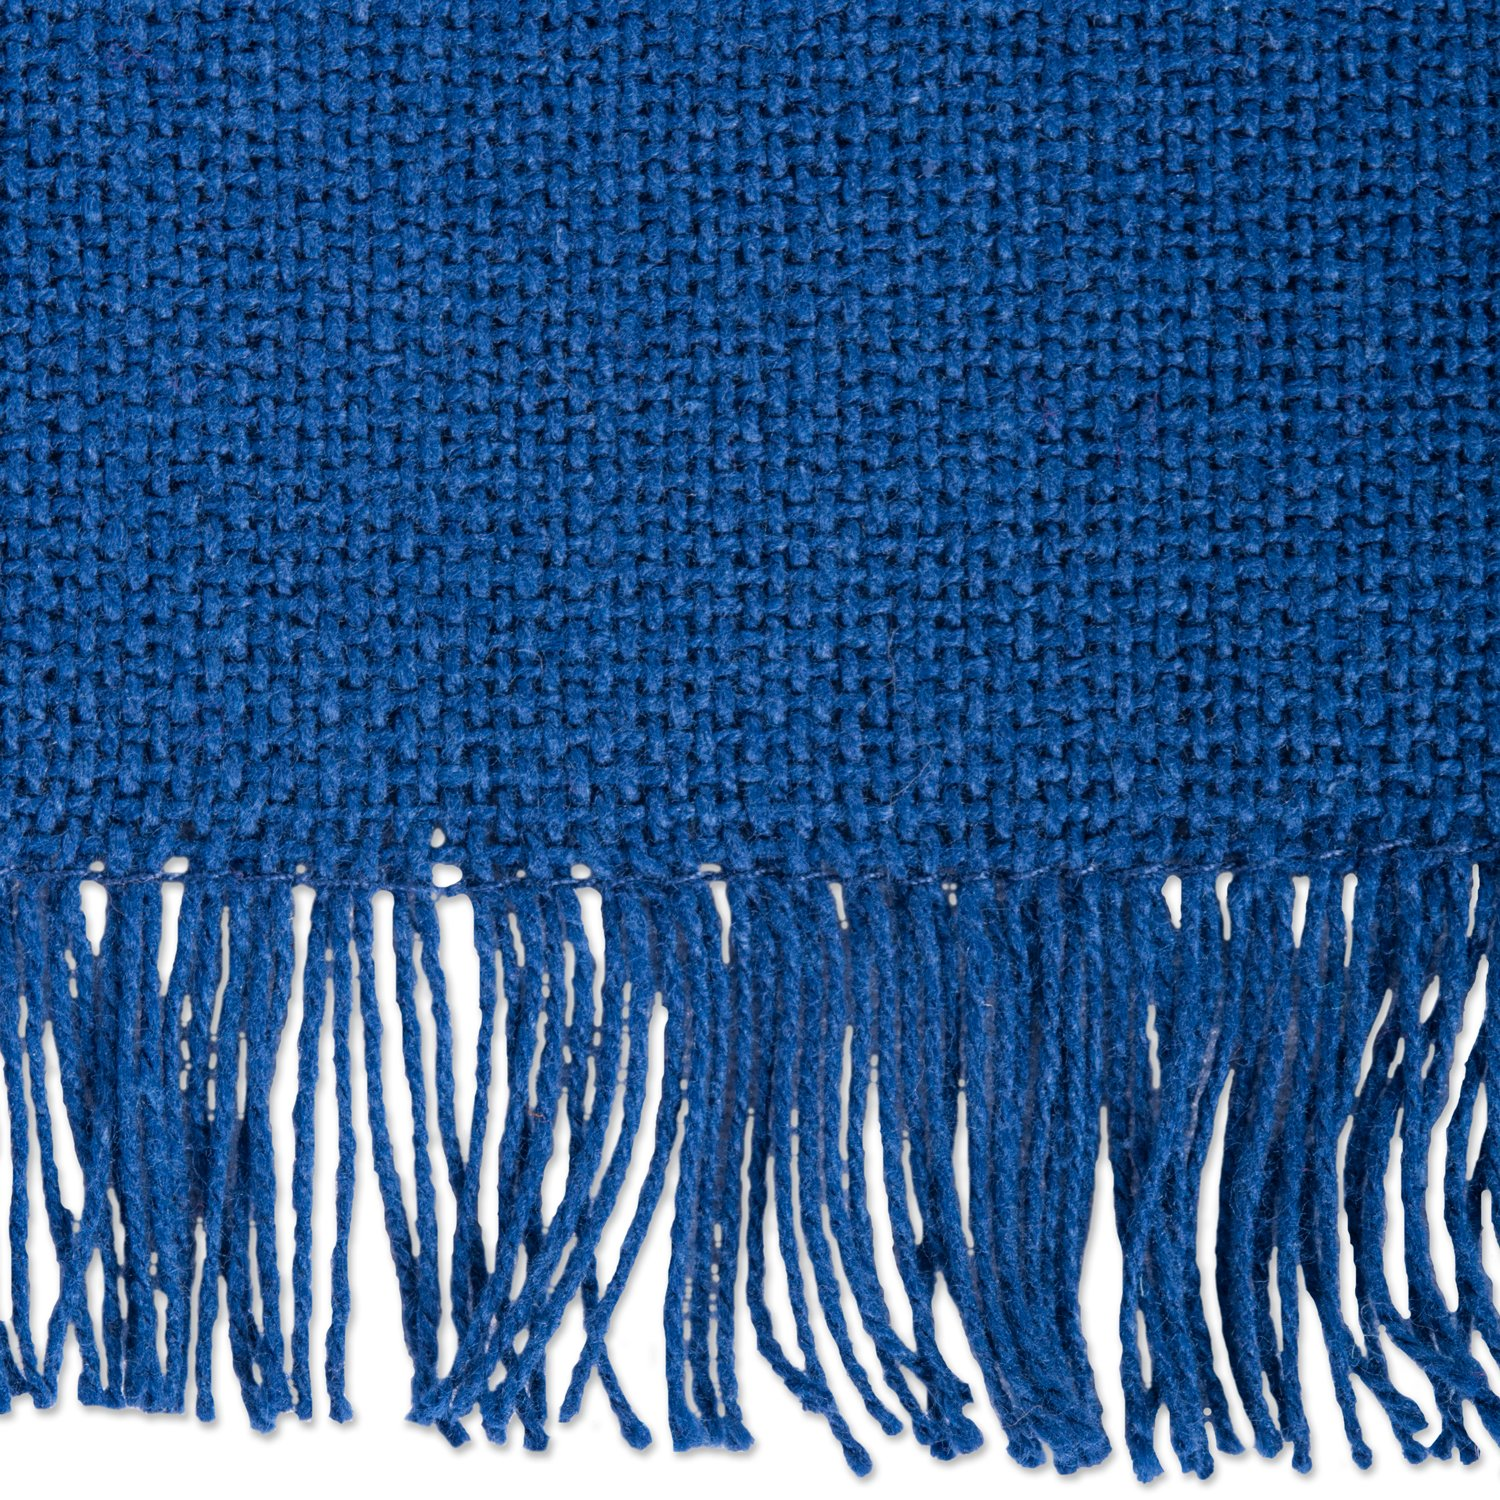 DII 100% Cotton, Oversized Basic Everyday Woven Heavyweight Napkin with Decorative Fringe for Place Settings, Family Dinners, BBQ, and Holidays (20x20'', Set of 6) Navy Blue Solid by DII (Image #4)